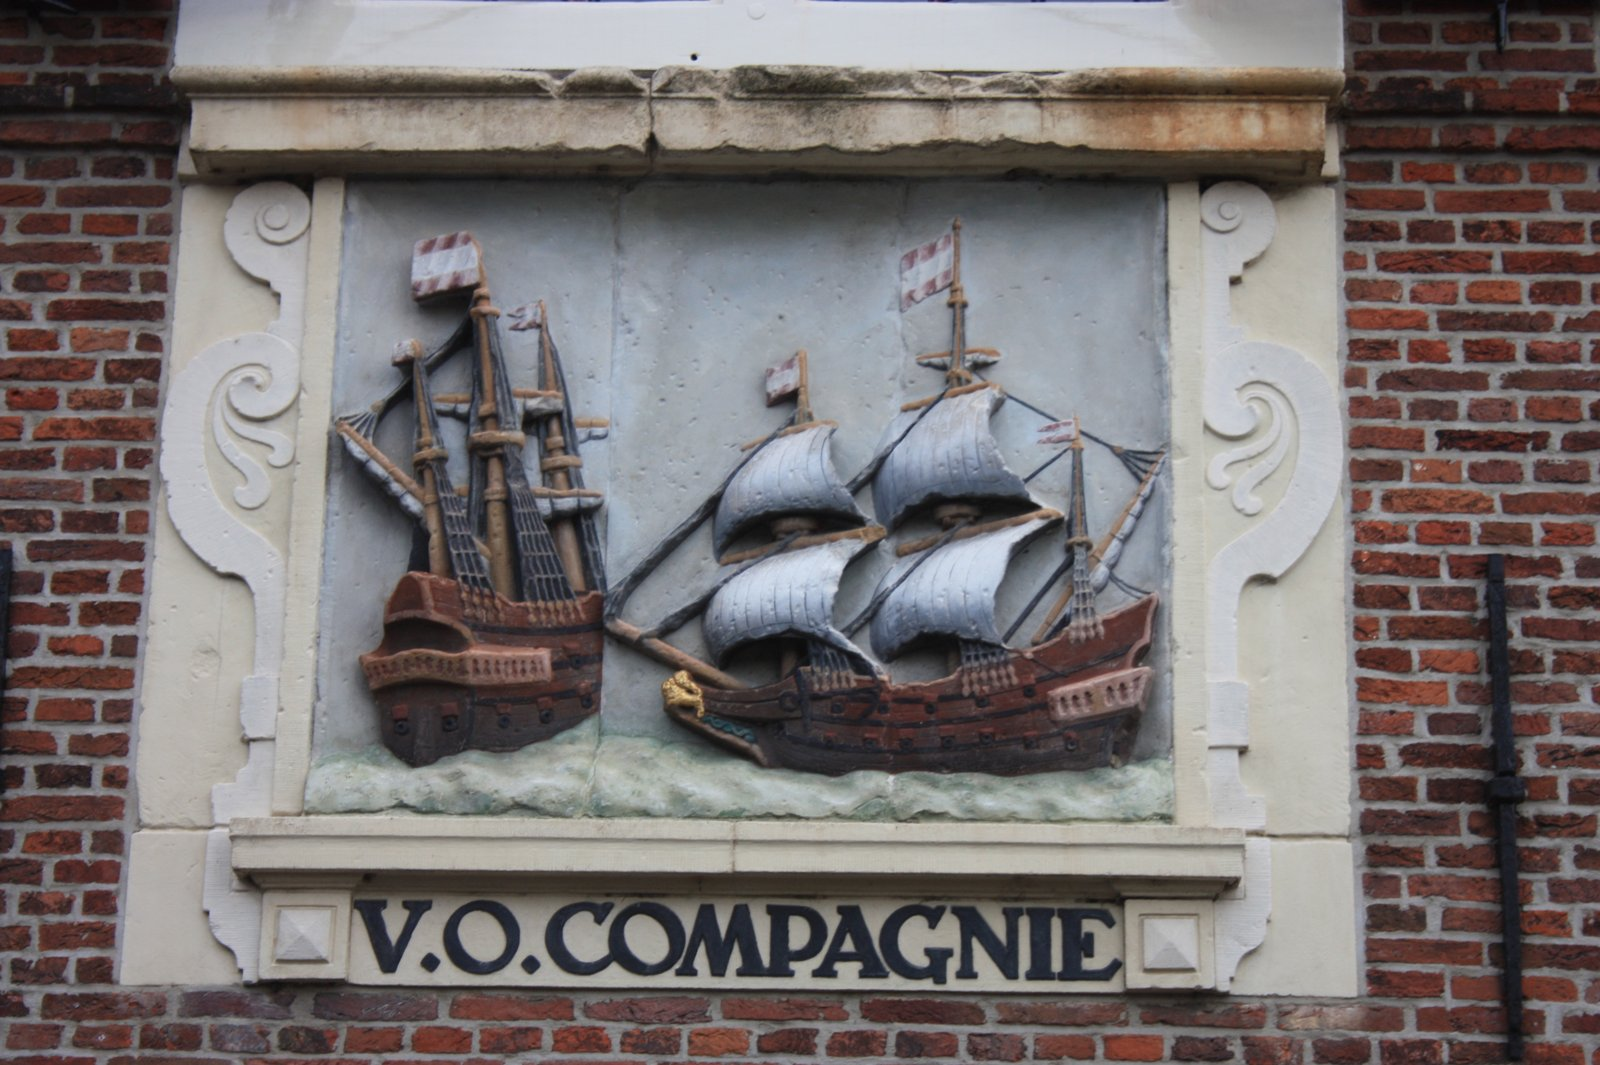 17th_century_plaque_to_Dutch_East_India_Company_(VOC),_Hoorn